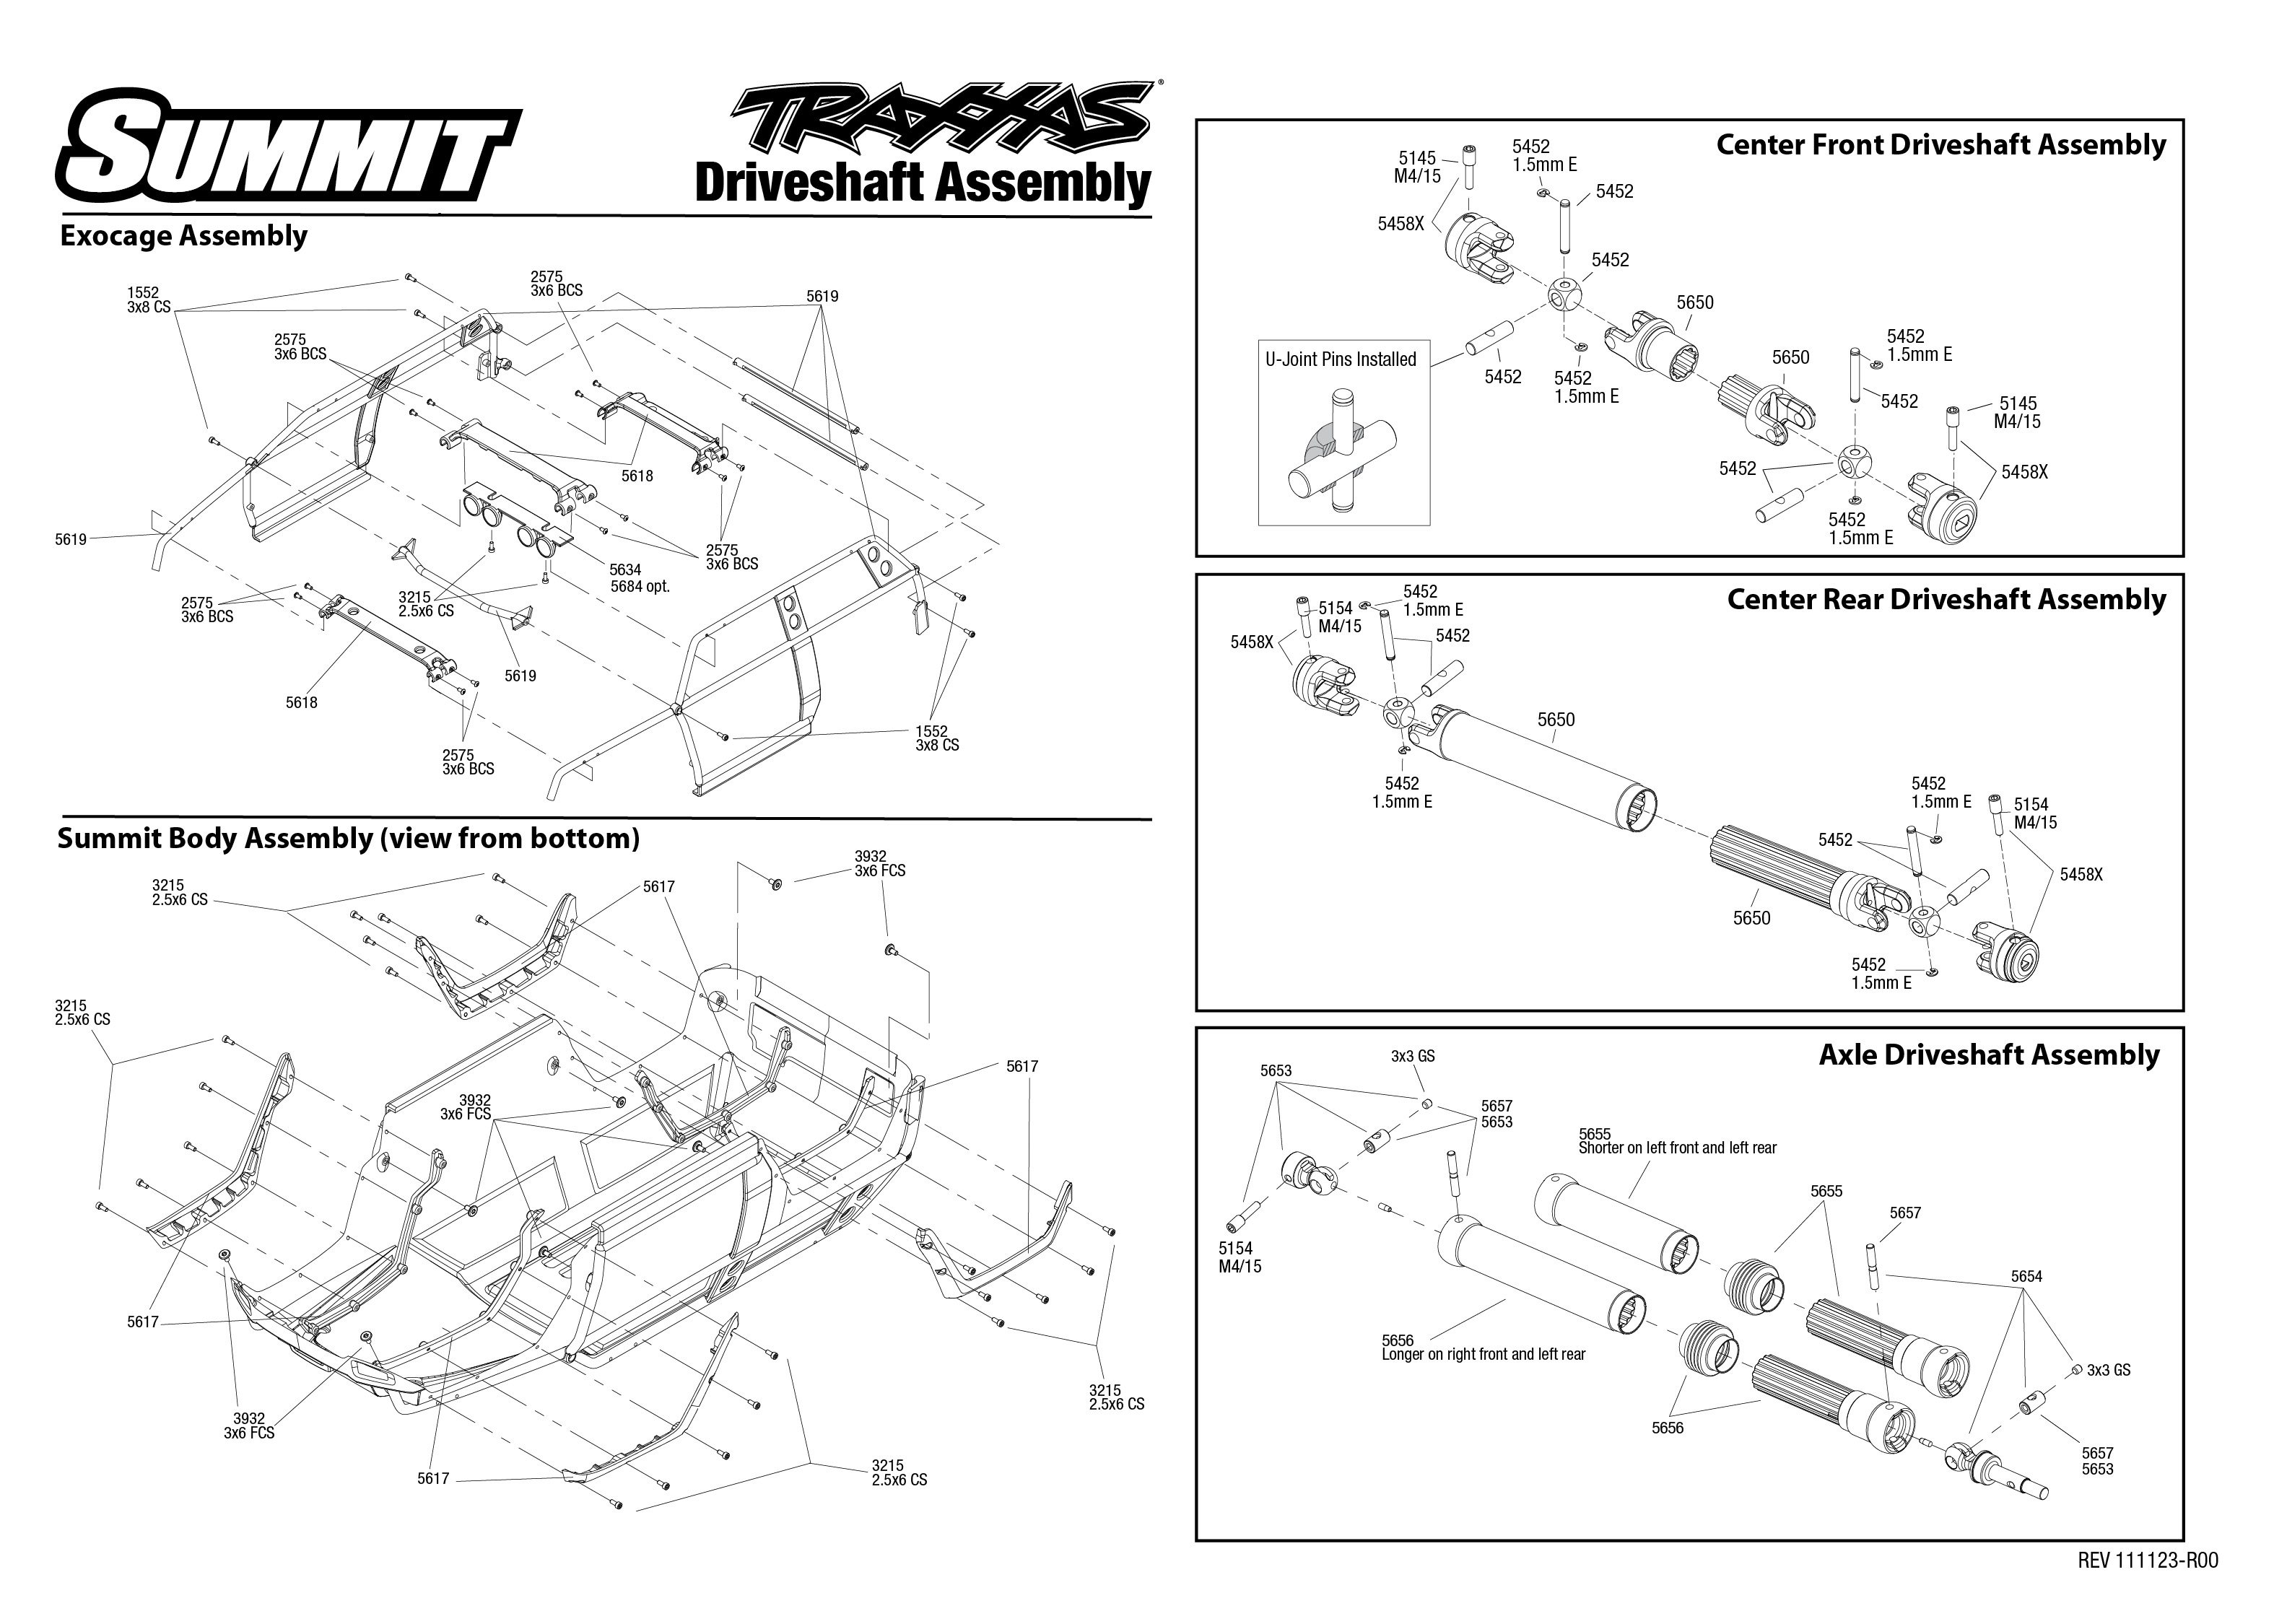 Exploded view: Traxxas Summit 1:10 - Driveshaft | Astra